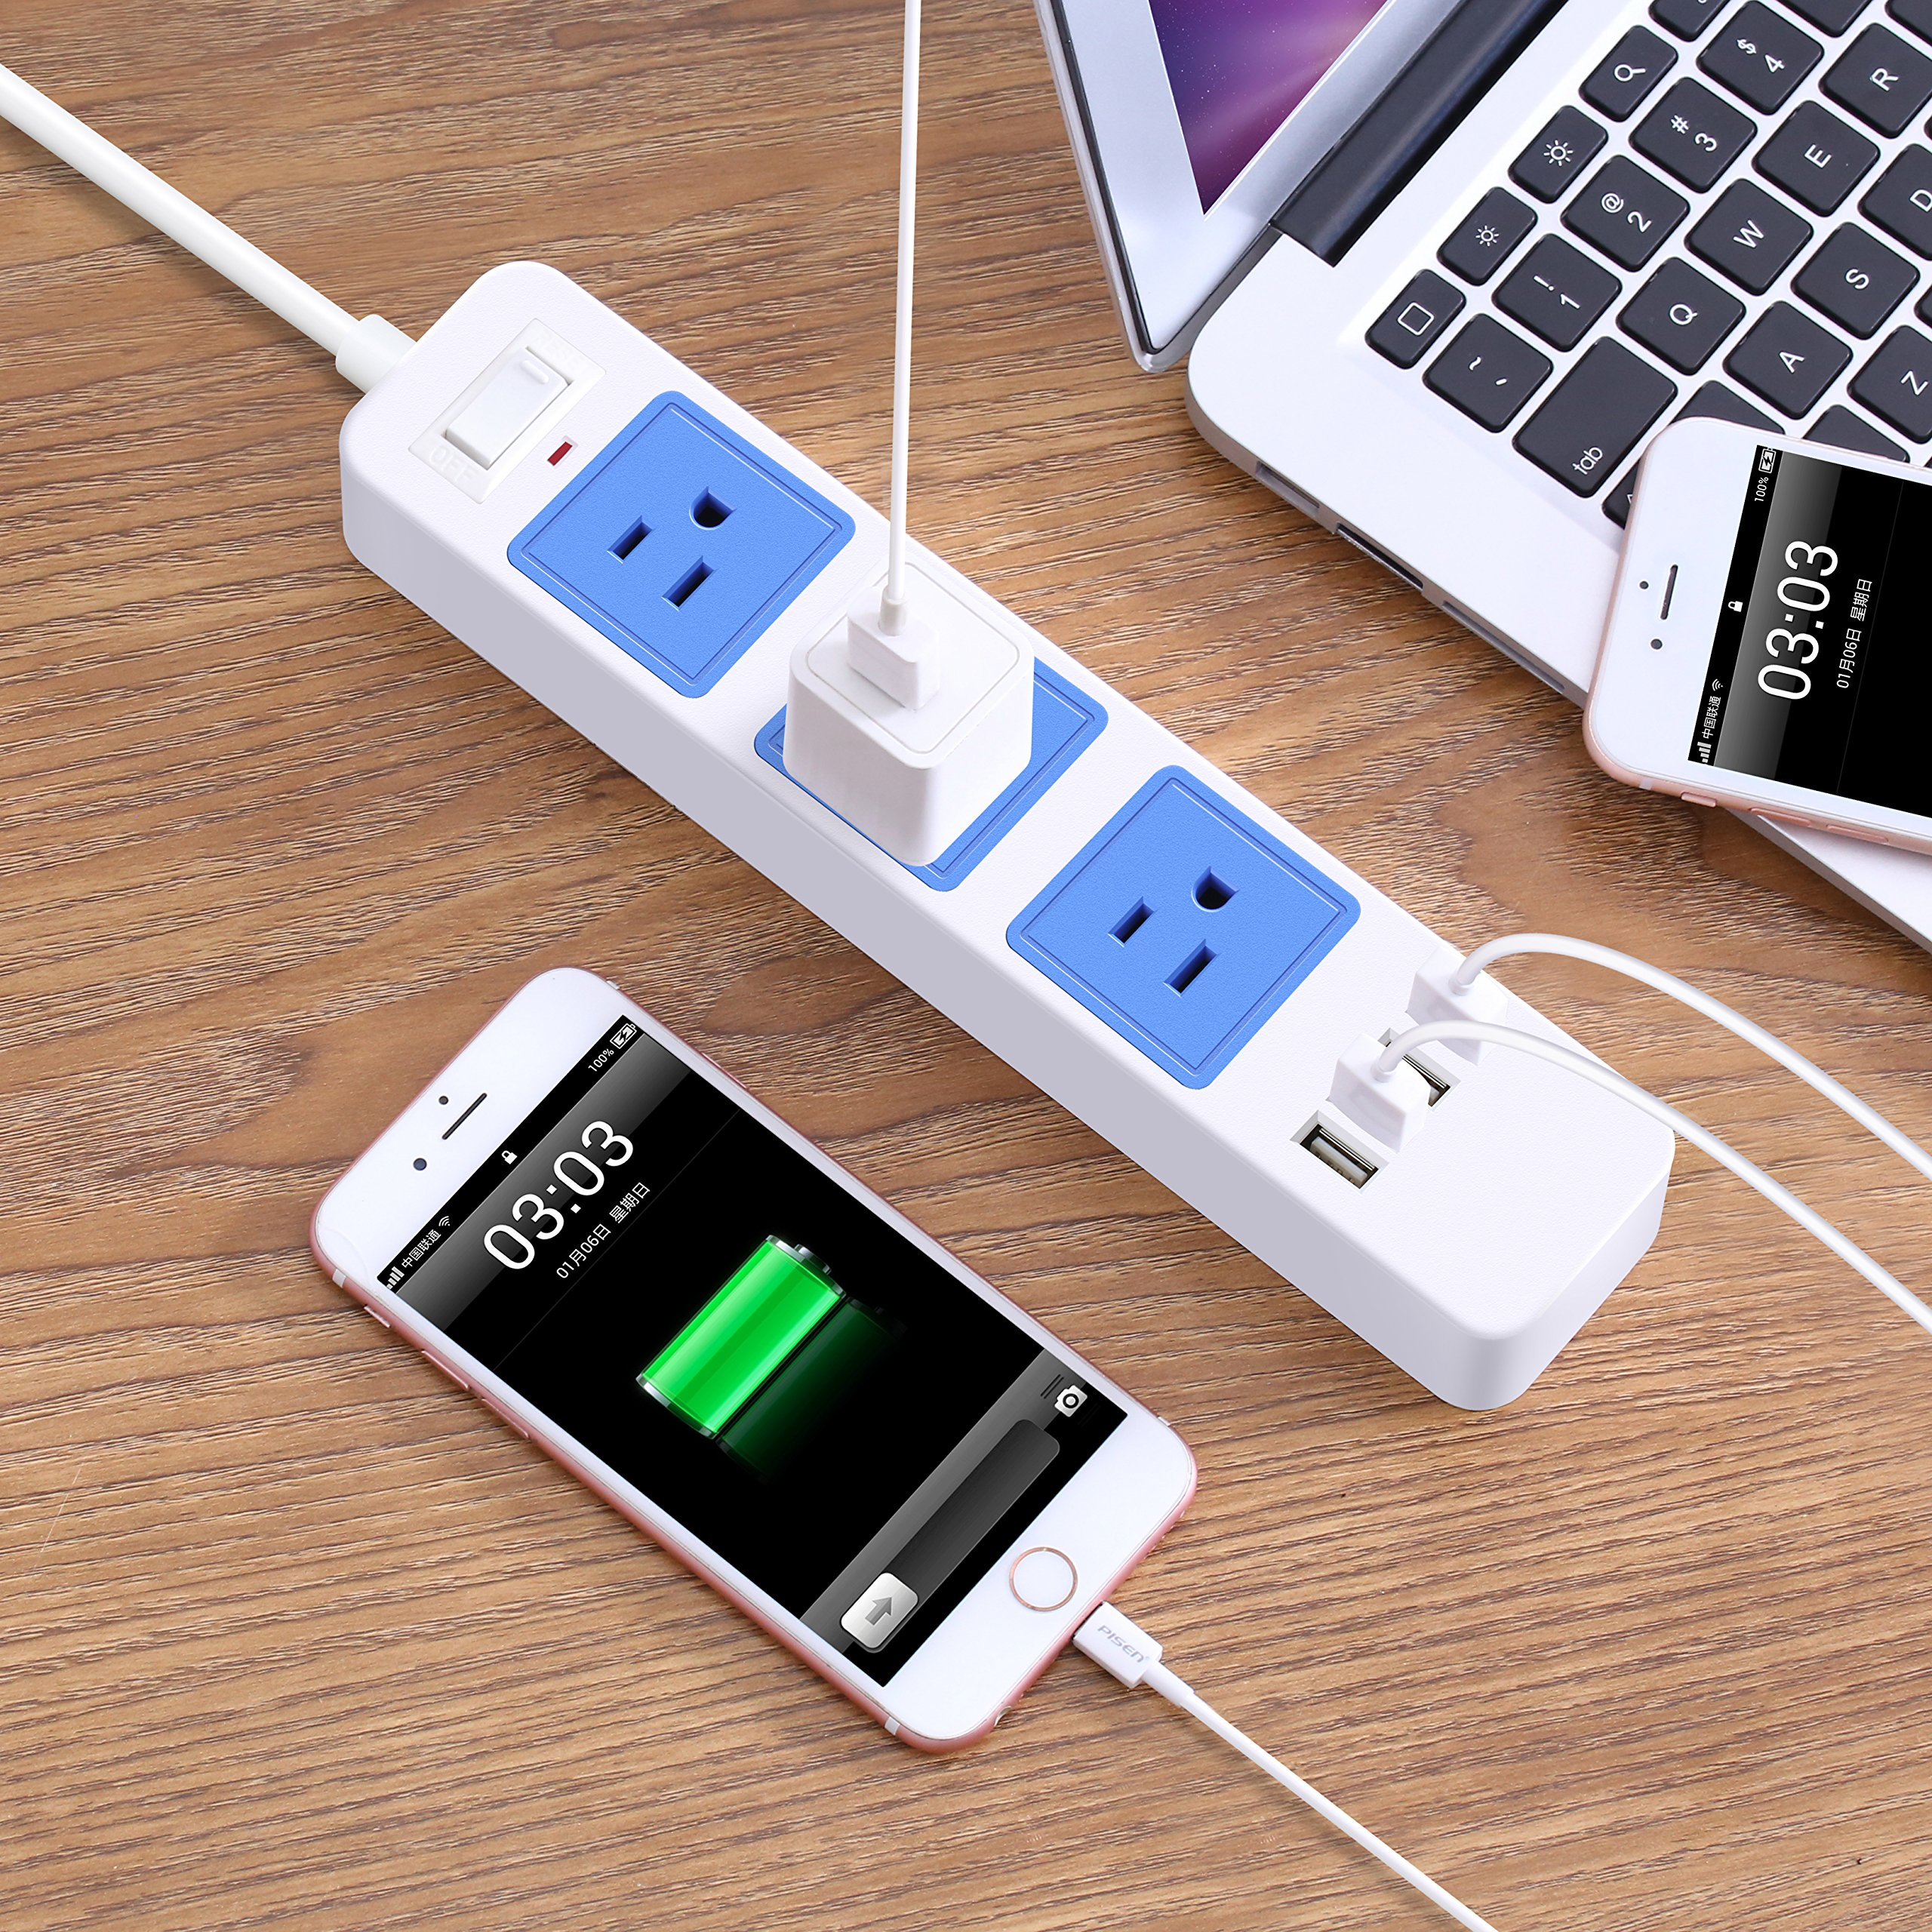 ZXpower USB Power Strip with 3 AC Outlets, 4 USB Charging Ports and 6.5Ft Cord for Home Office Travel (Blue) by ZXpower (Image #7)